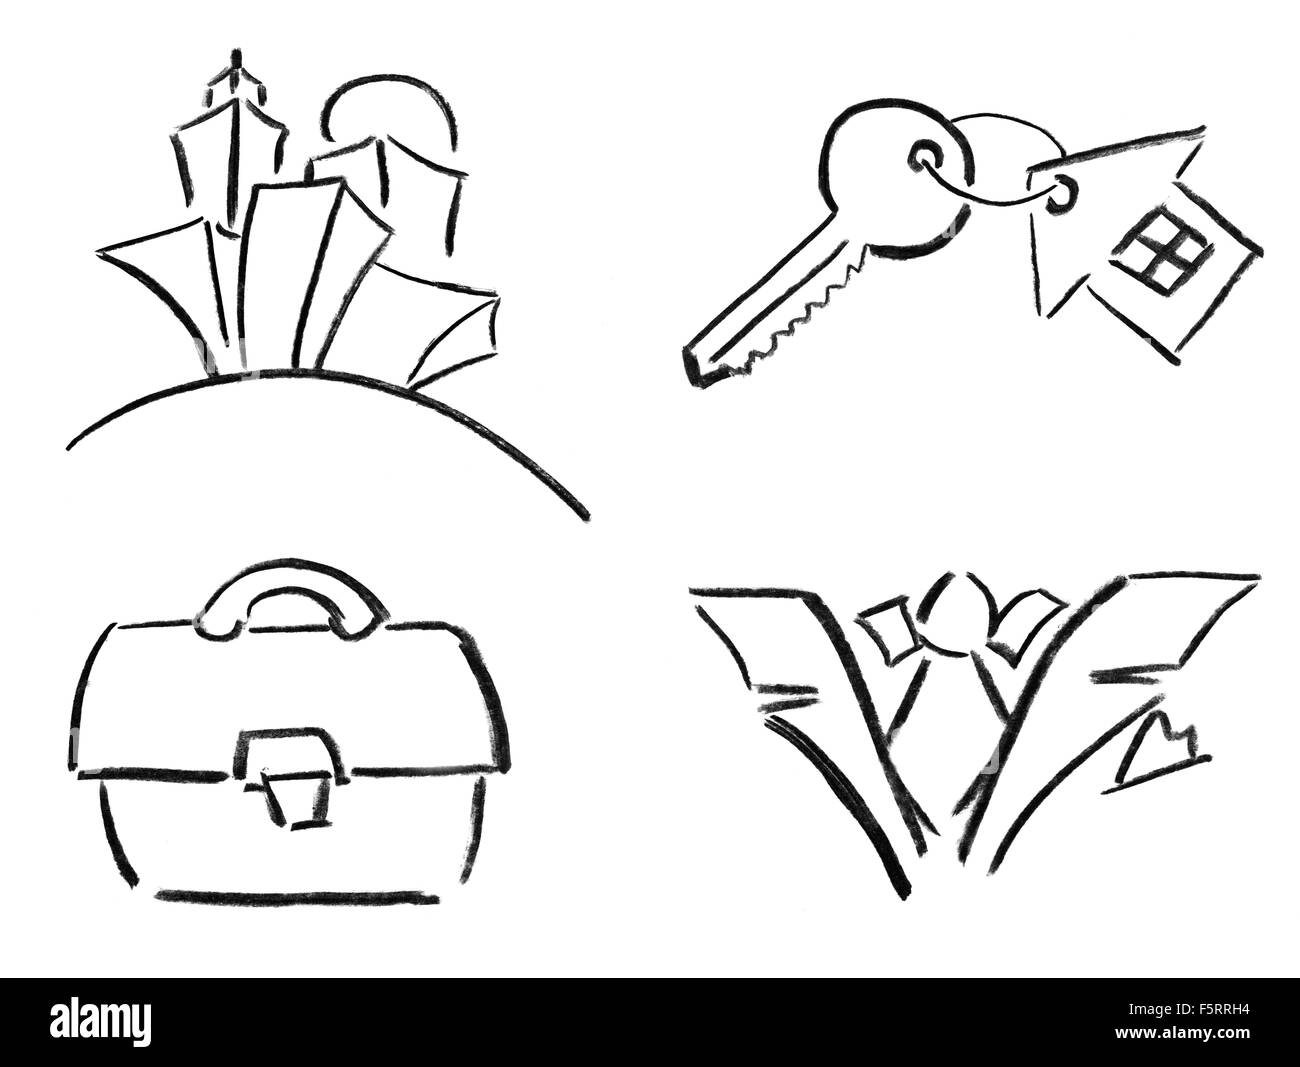 Pencil sketches of city, briefcase, house key and formal wear. Isolated on white - Stock Image